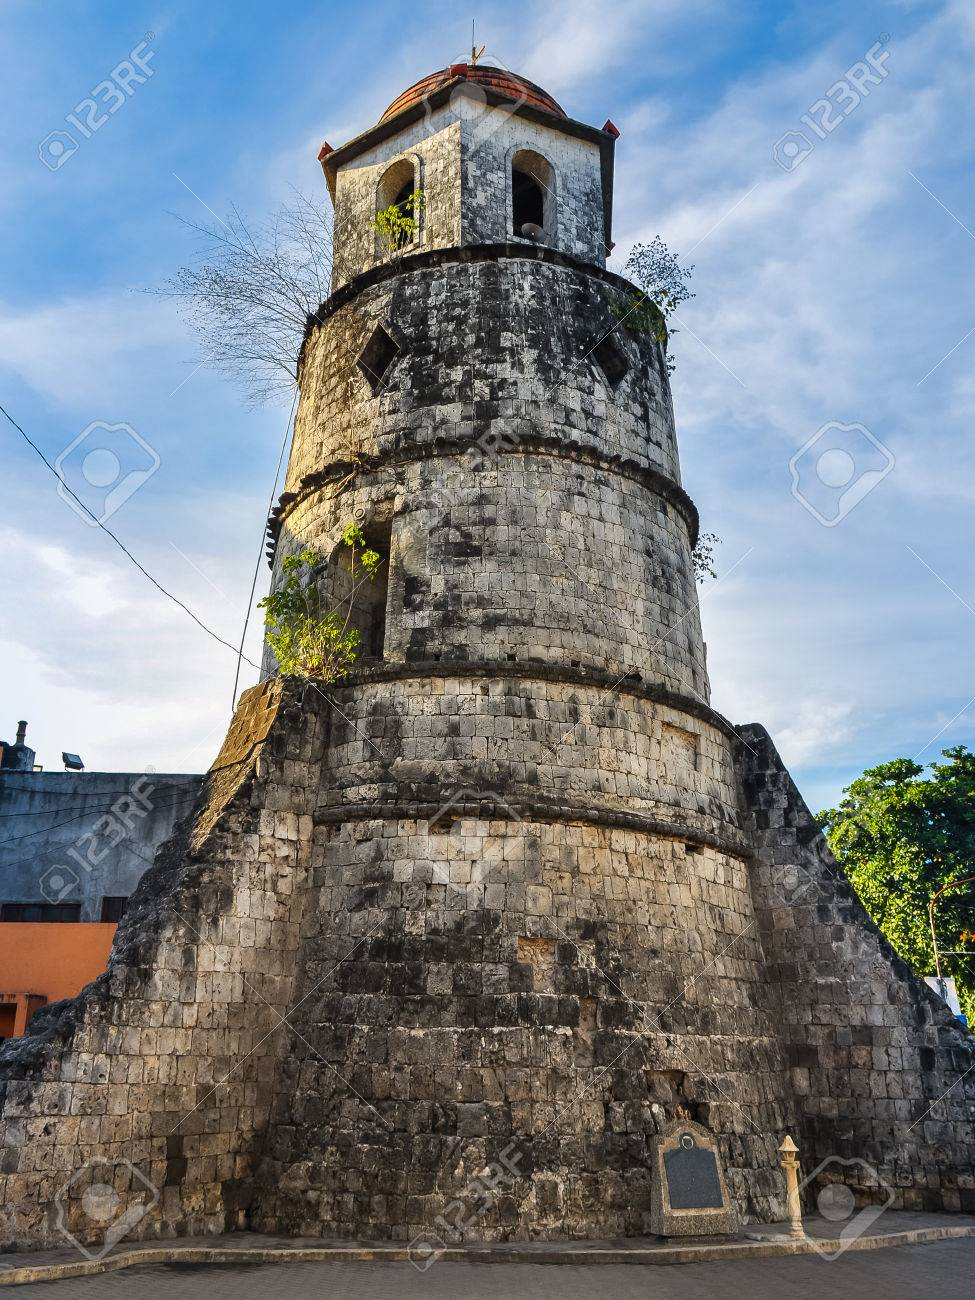 6338 sundown drive 32244 - Historical Bell Tower Made From Coral Stone Dumaguete City Negros Oriental Philippines Stock